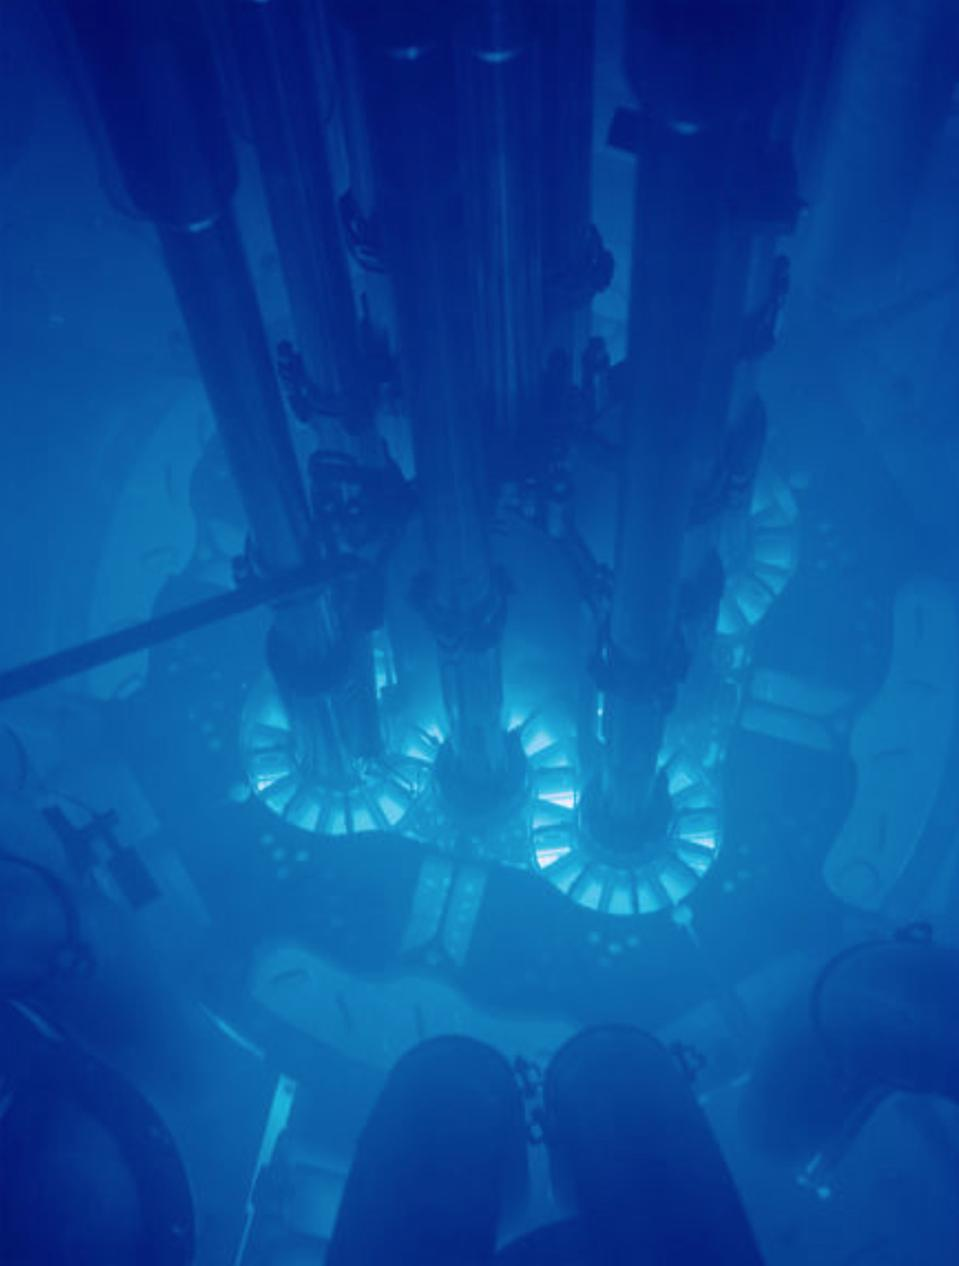 Research reactor core